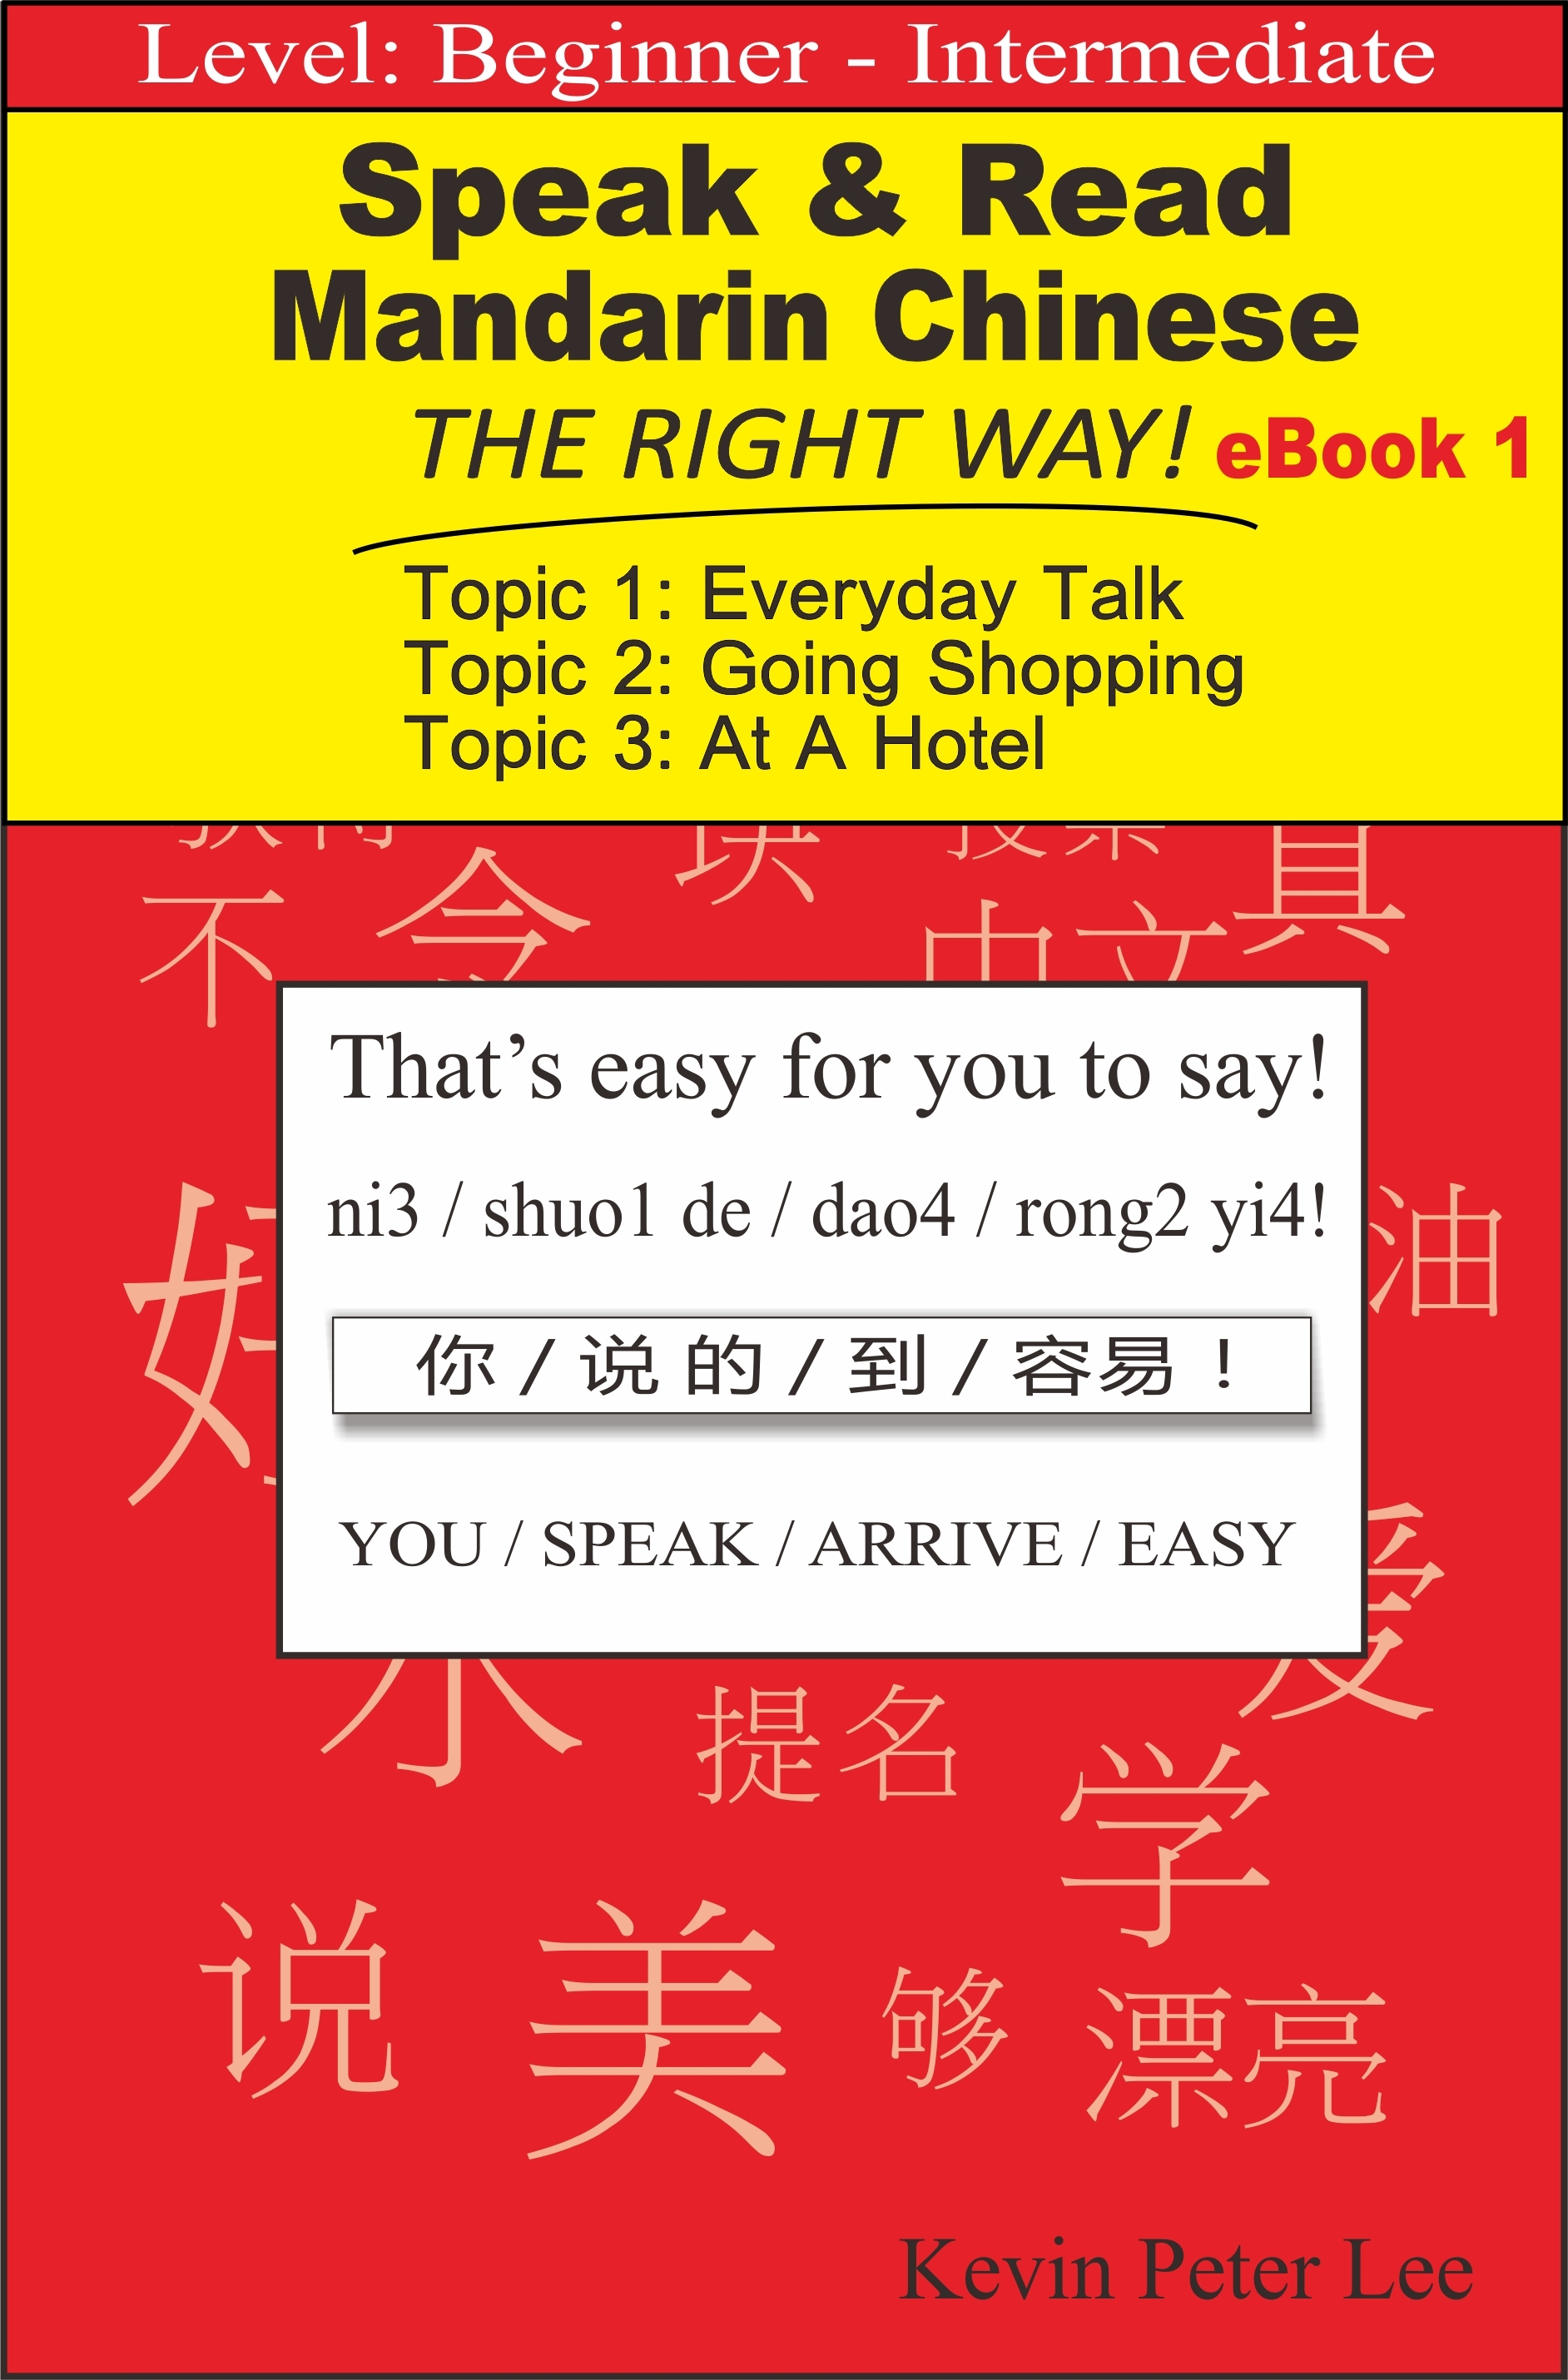 Speak & Read Mandarin Chinese The Right Way! eBook 1